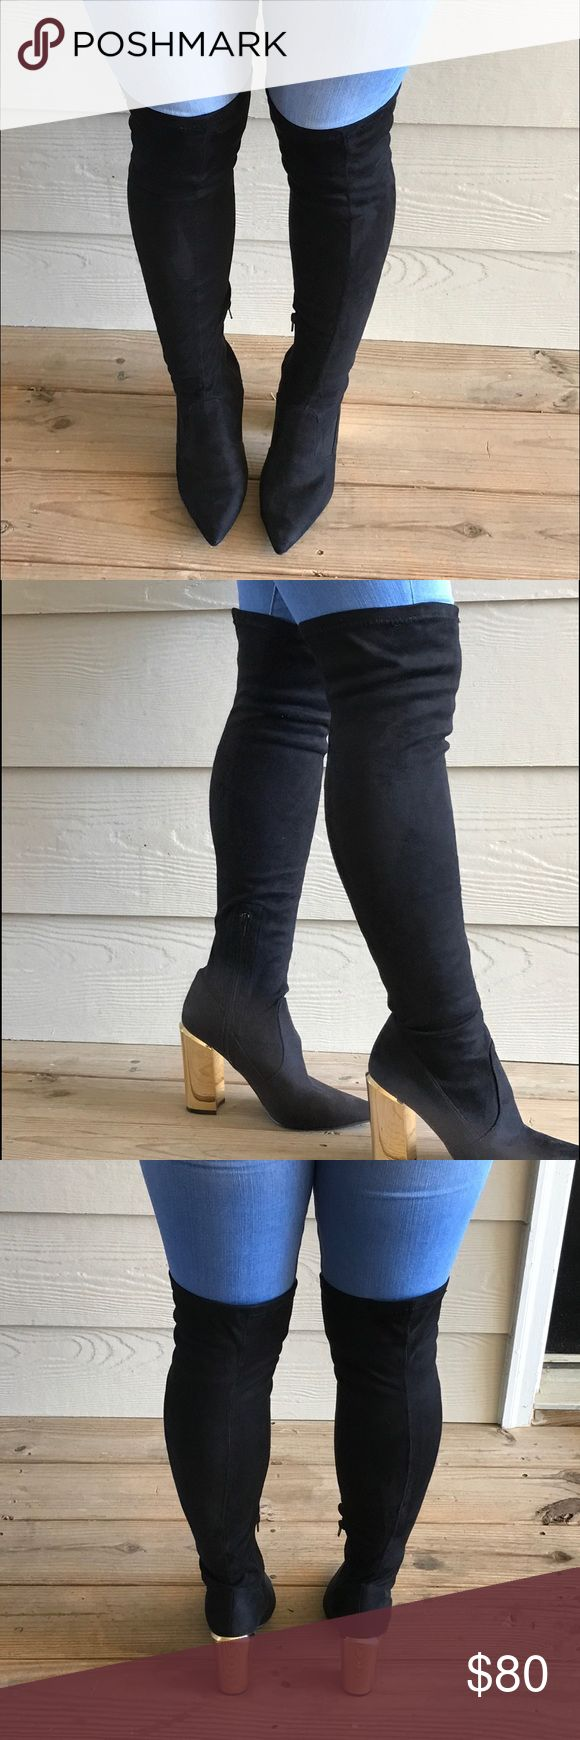 Knee high gold heel boots These over the knee sock boots are sure to catch your attention with a gold heel. They are great for a night out and are in great condition. These boots have only ever been worn twice Steve Madden Shoes Over the Knee Boots